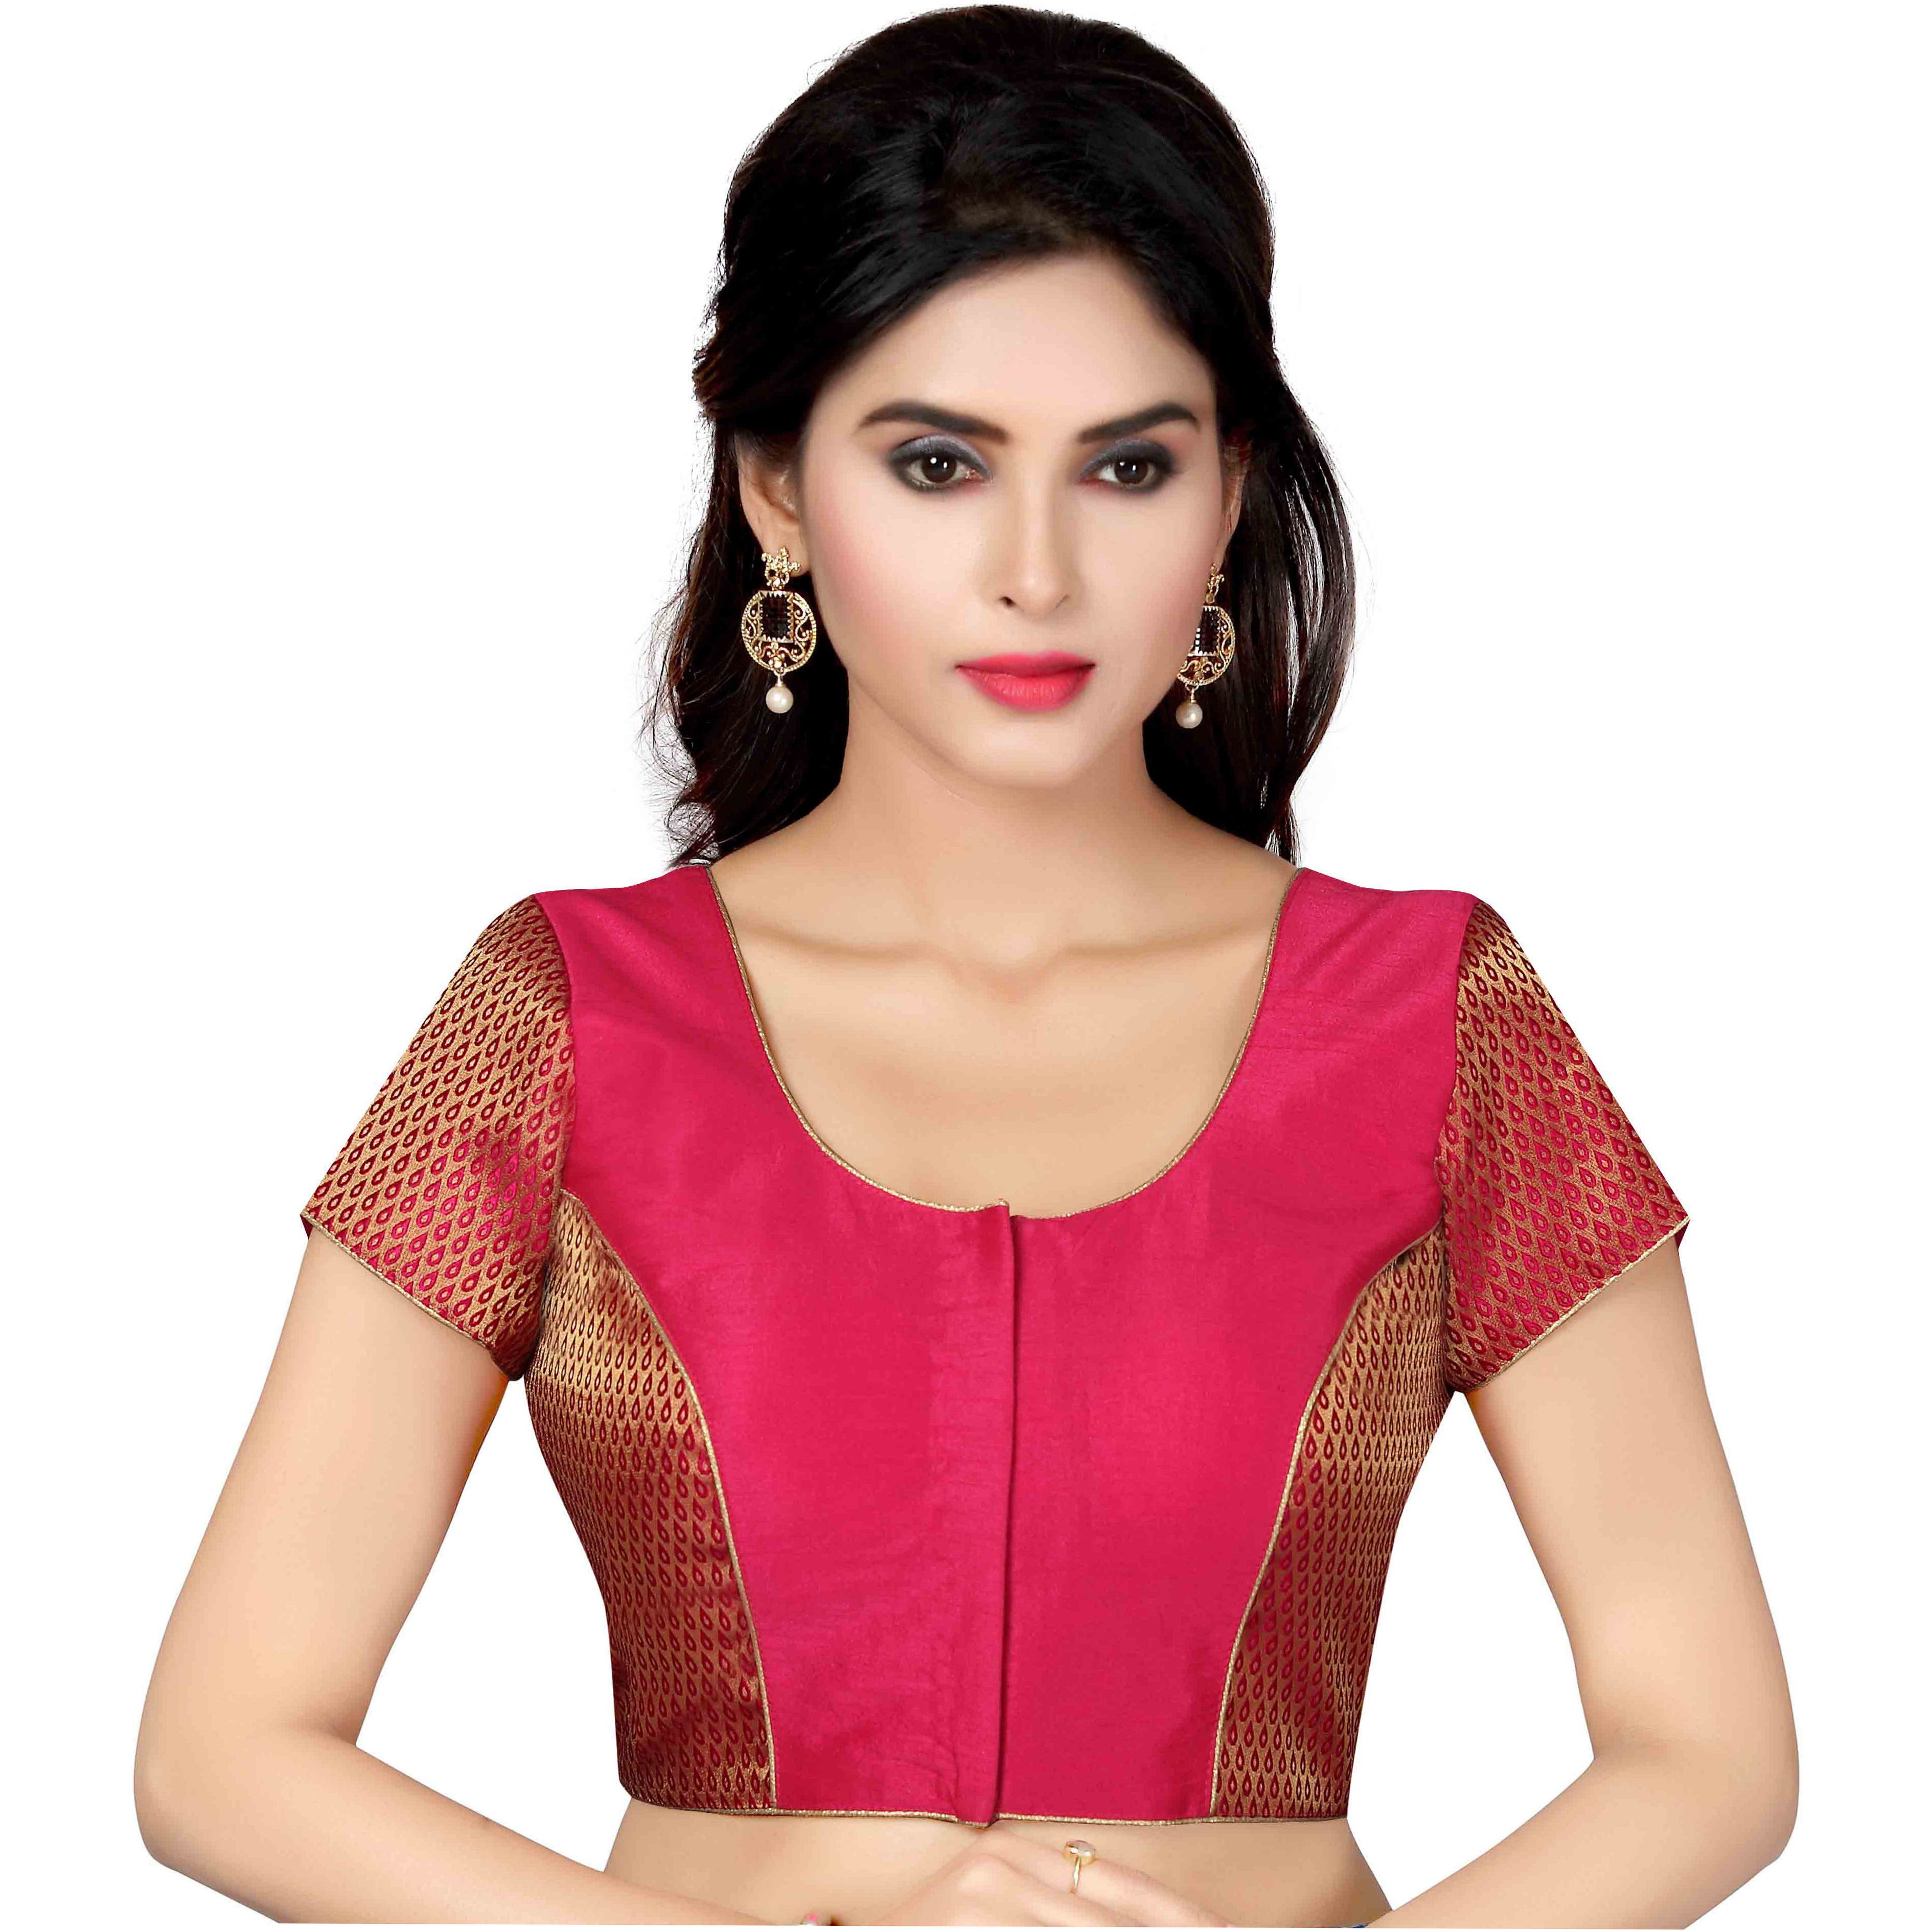 TrendyFashionMall Ready Made Designer Art Silk Saree Blouse Collection! (Color:PINK, Size:MEDIUM - 40)